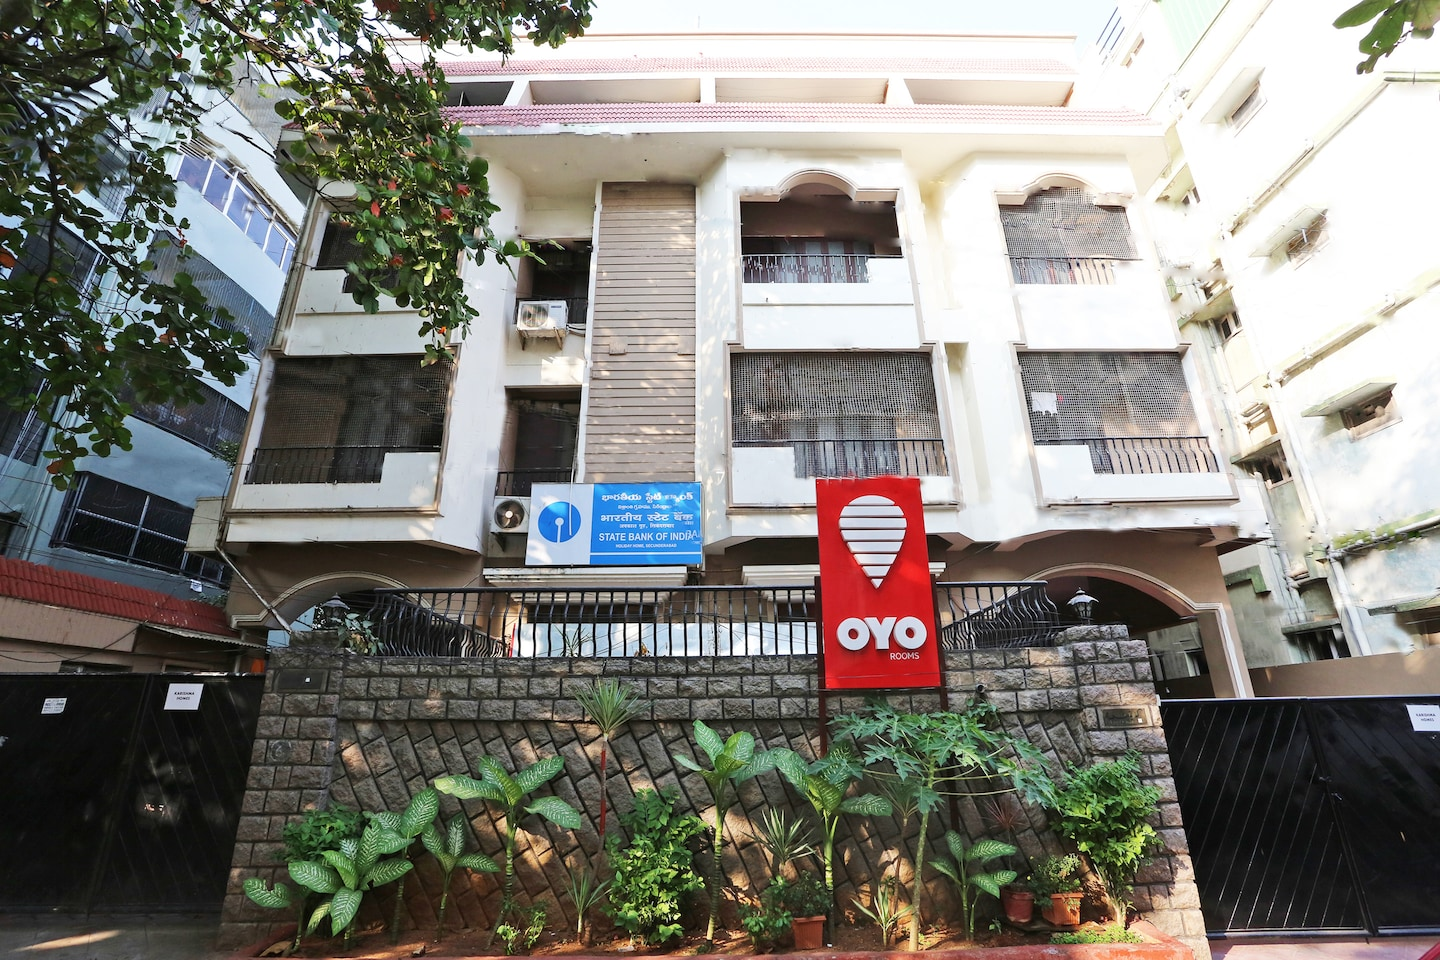 Oyo 730 Hotel Karishma Homes Hyderabad Hyderabad Hotel